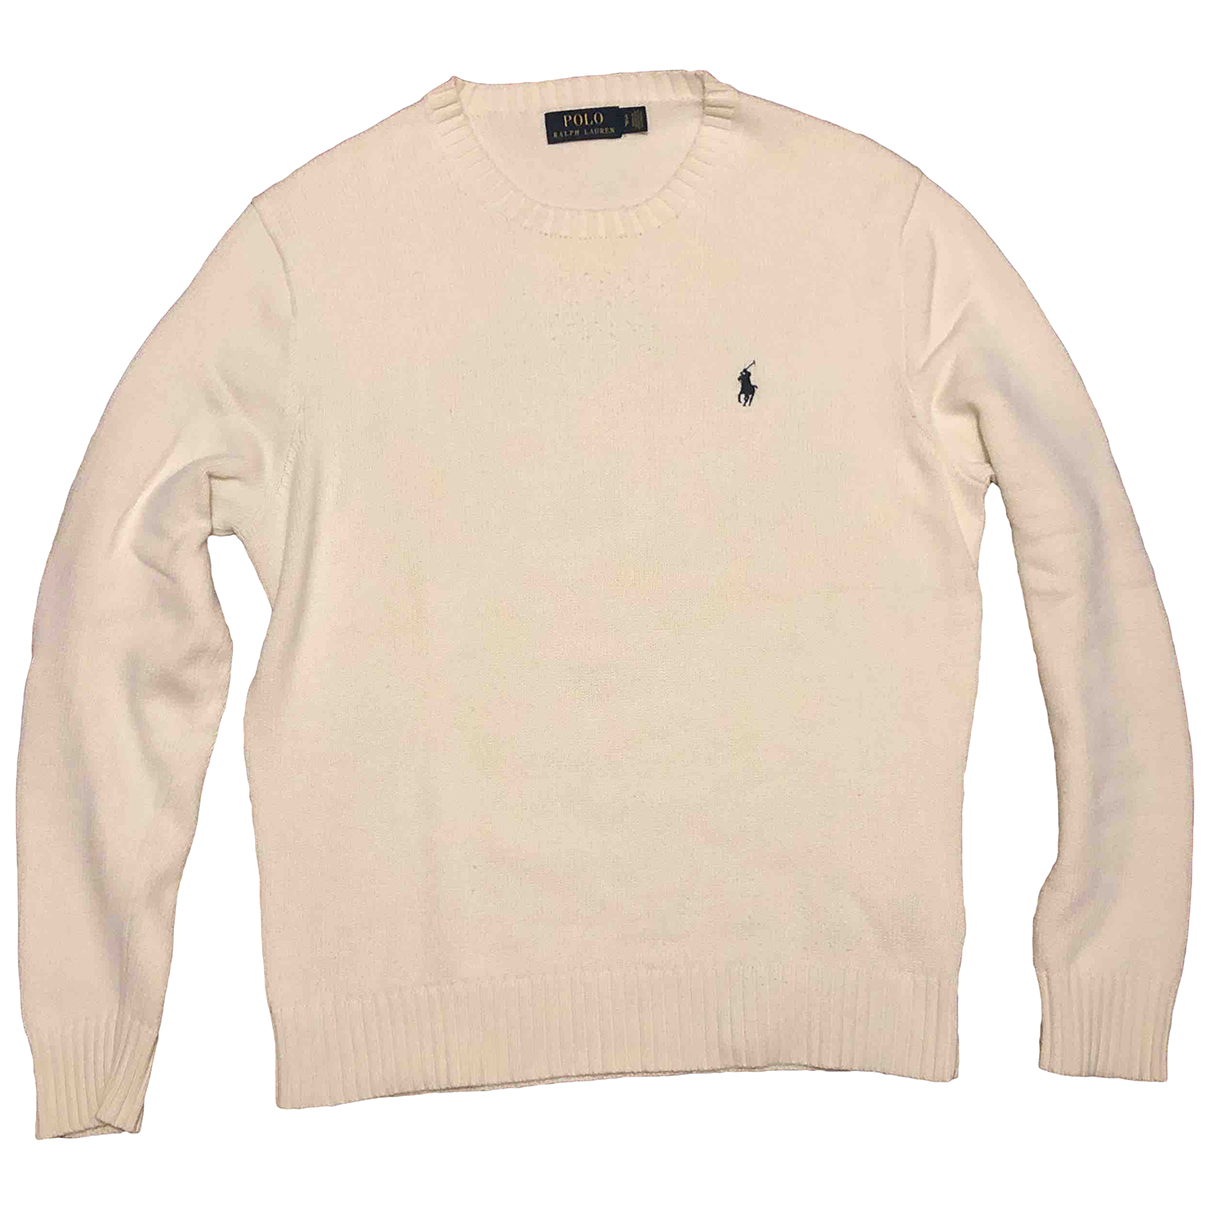 Polo Ralph Lauren \N Beige Cotton Knitwear & Sweatshirts for Men S International